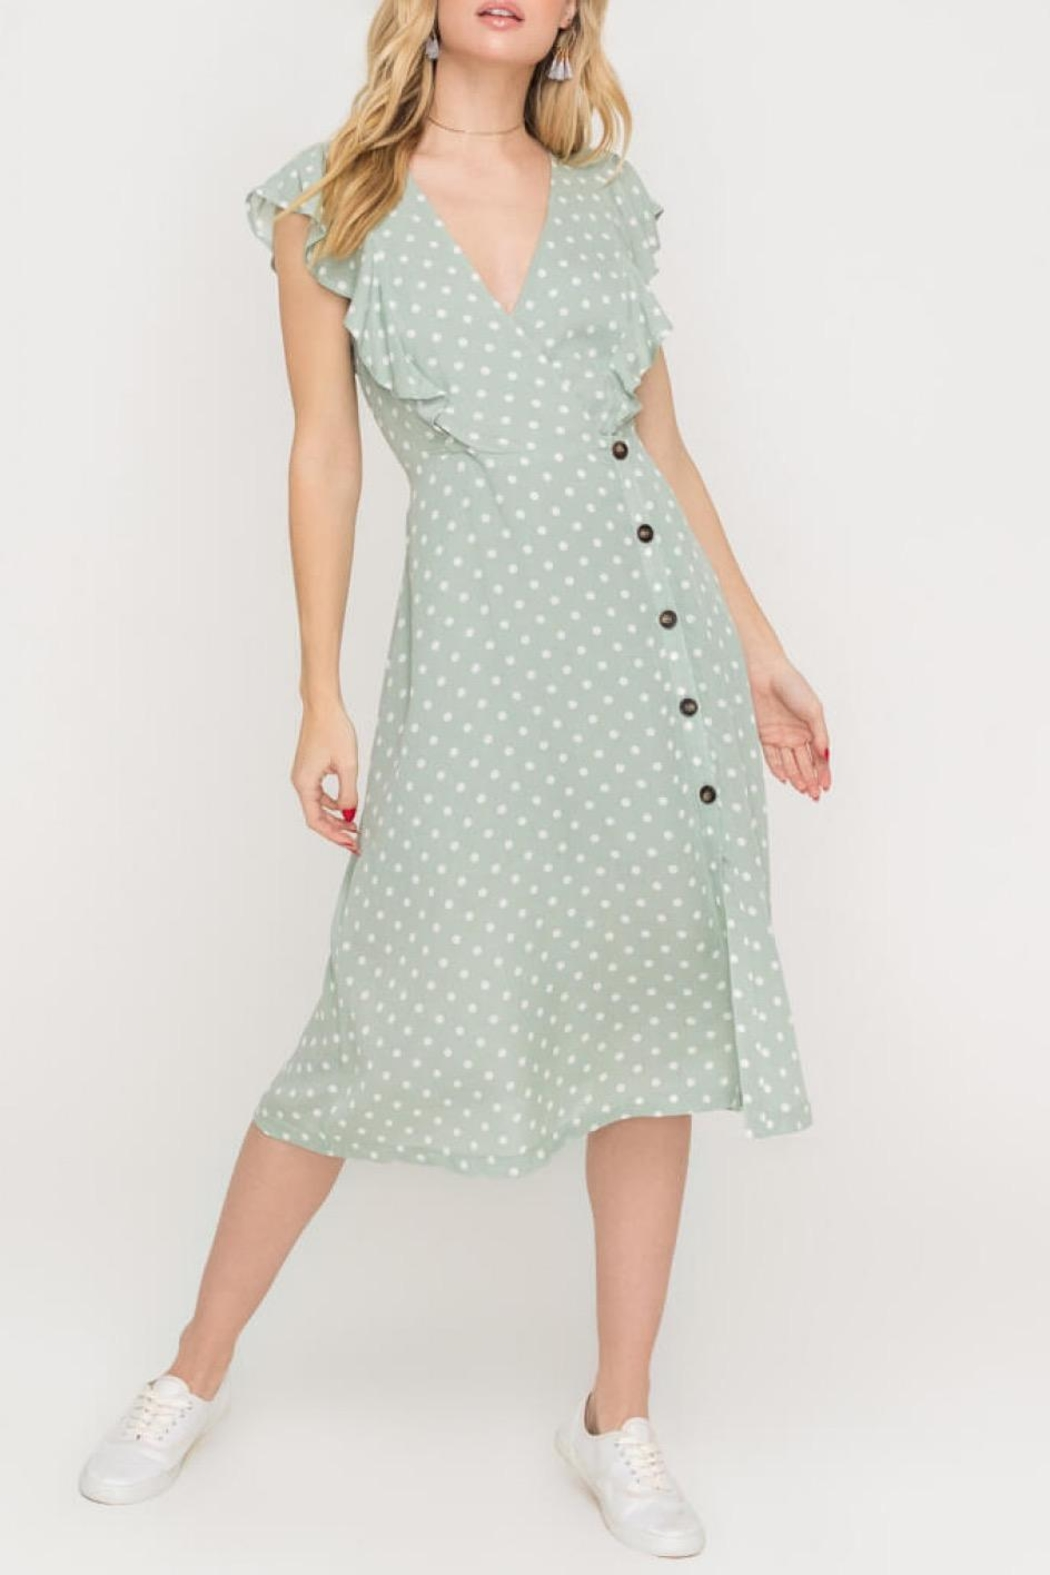 Lush Clothing  Green Polka-Dit Midi-Dress - Side Cropped Image